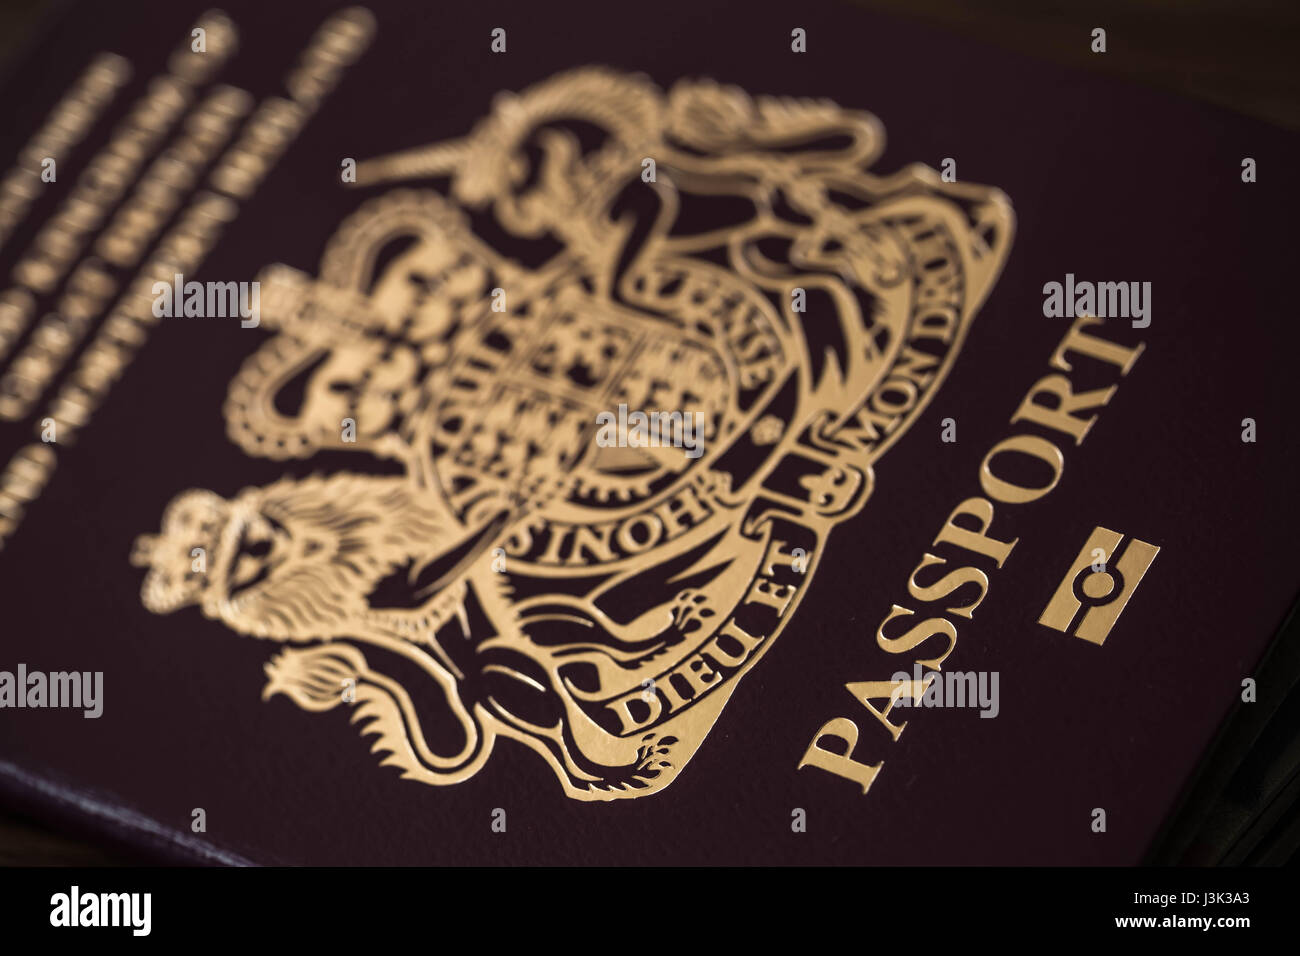 Passport of the United Kingdom of Great Britain and Northern Ireland. - Stock Image